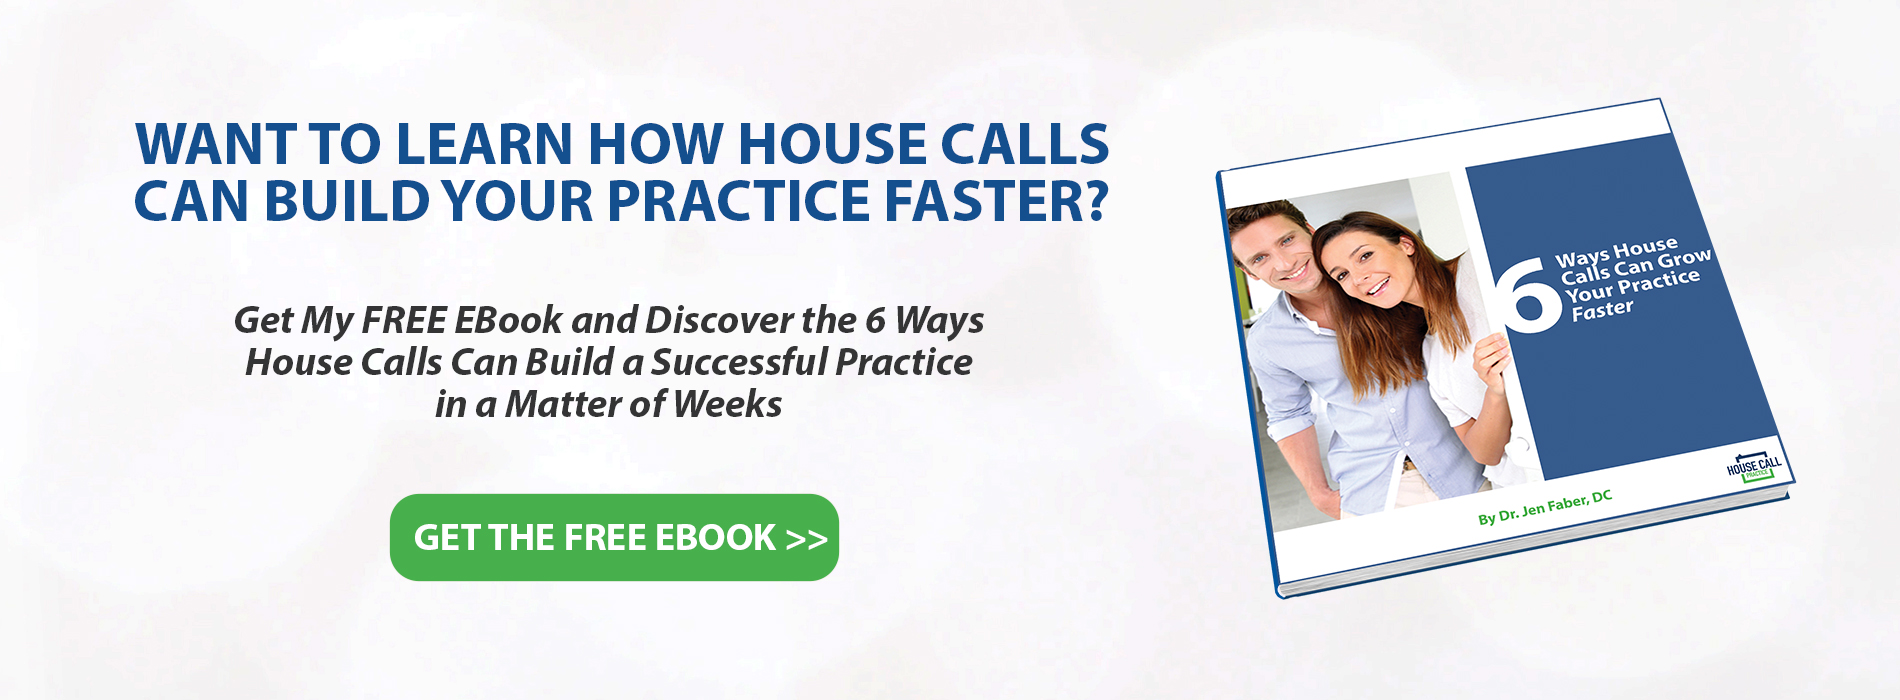 Ebook for Quickly Starting a House Call Practice for Health and Wellness Professionals, Chiropractors, and Doctors